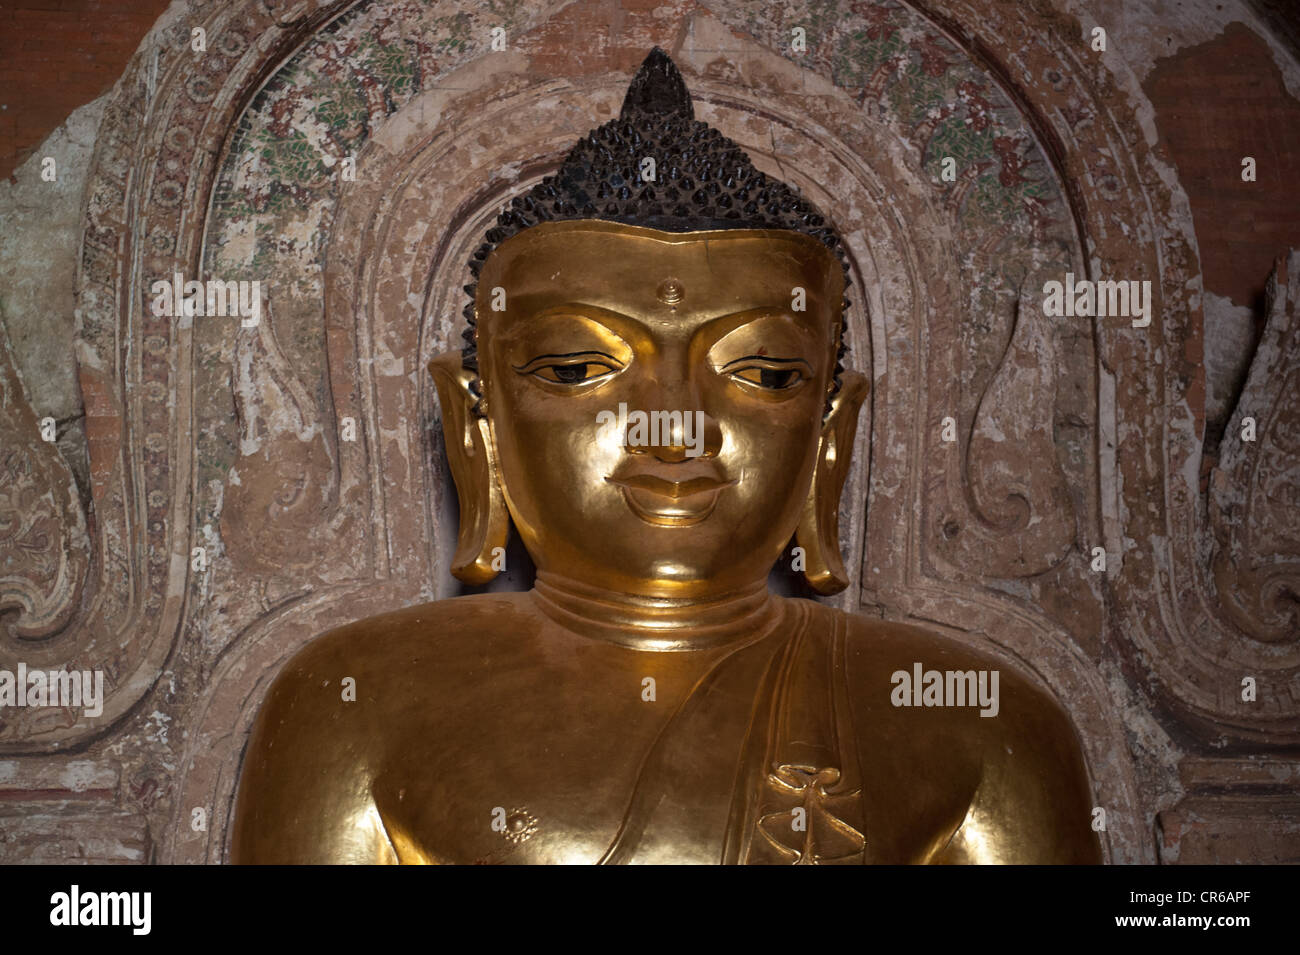 Thoughtfull Buddha - Stock Image